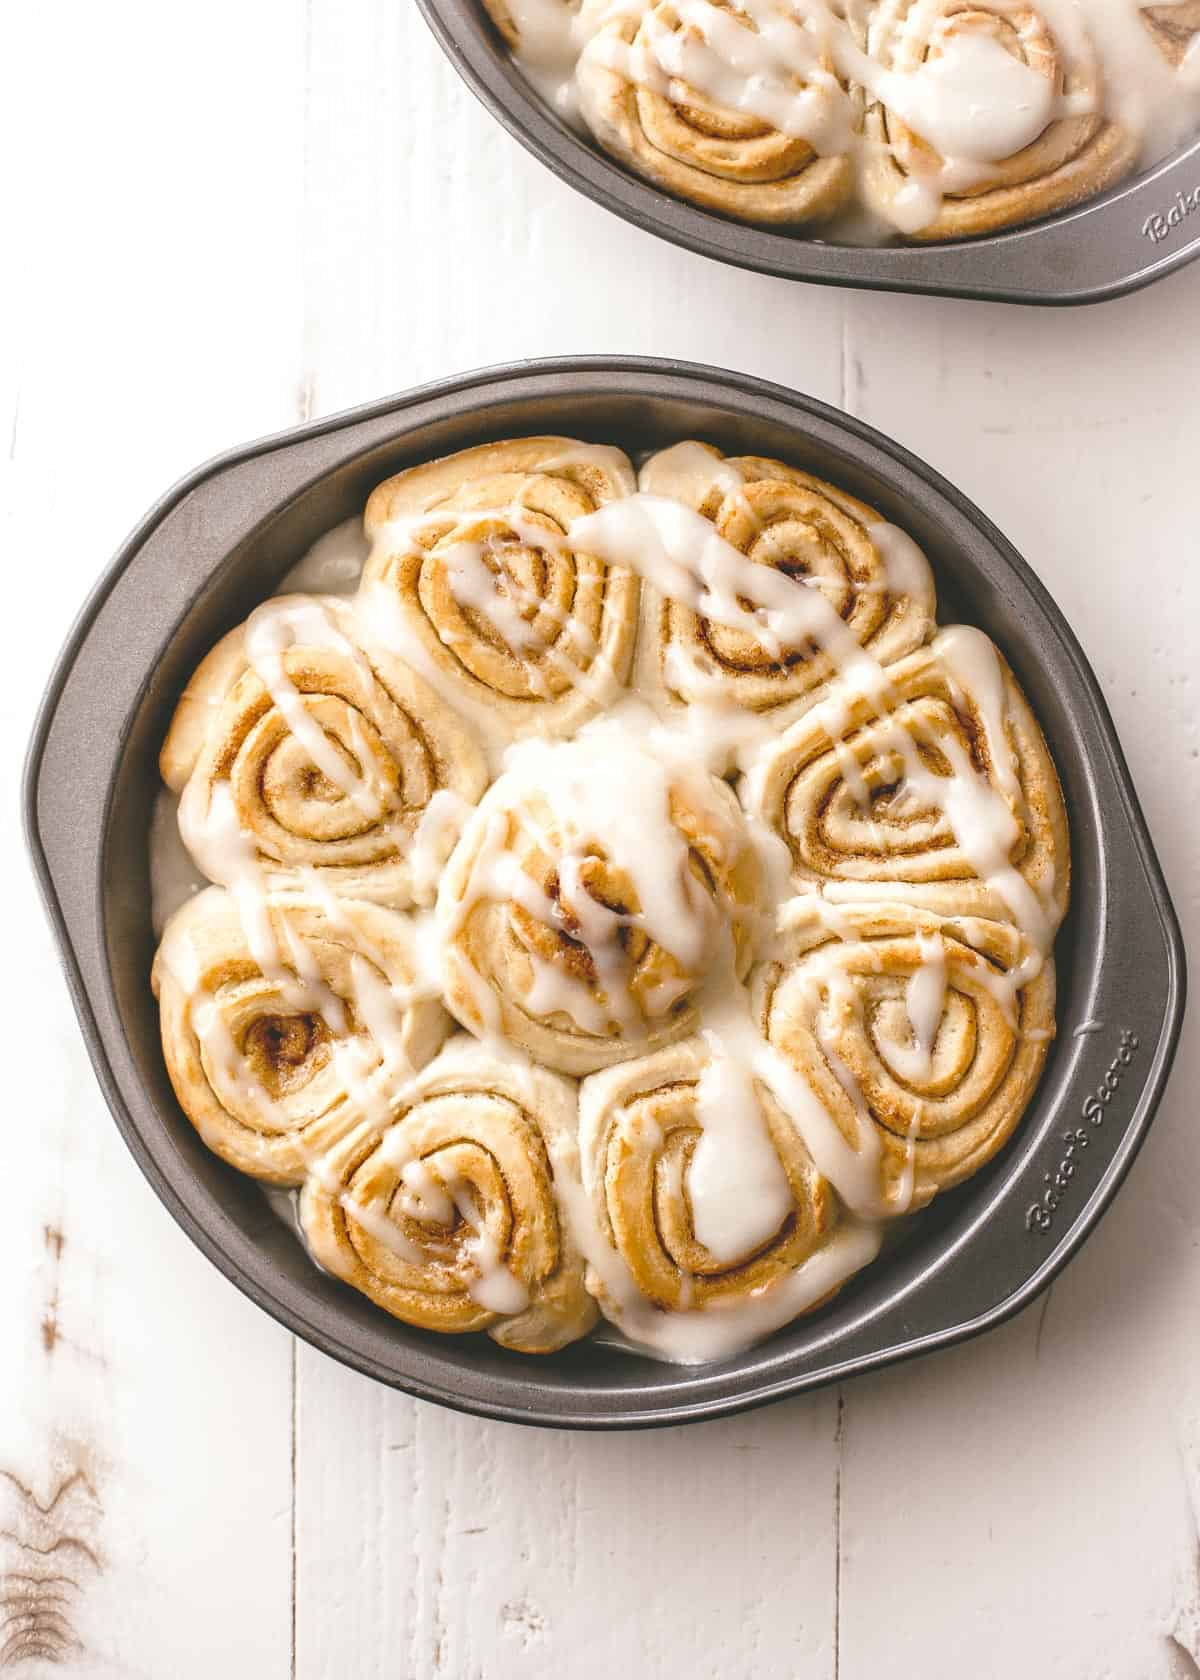 cinnamon rolls in a round baking pan